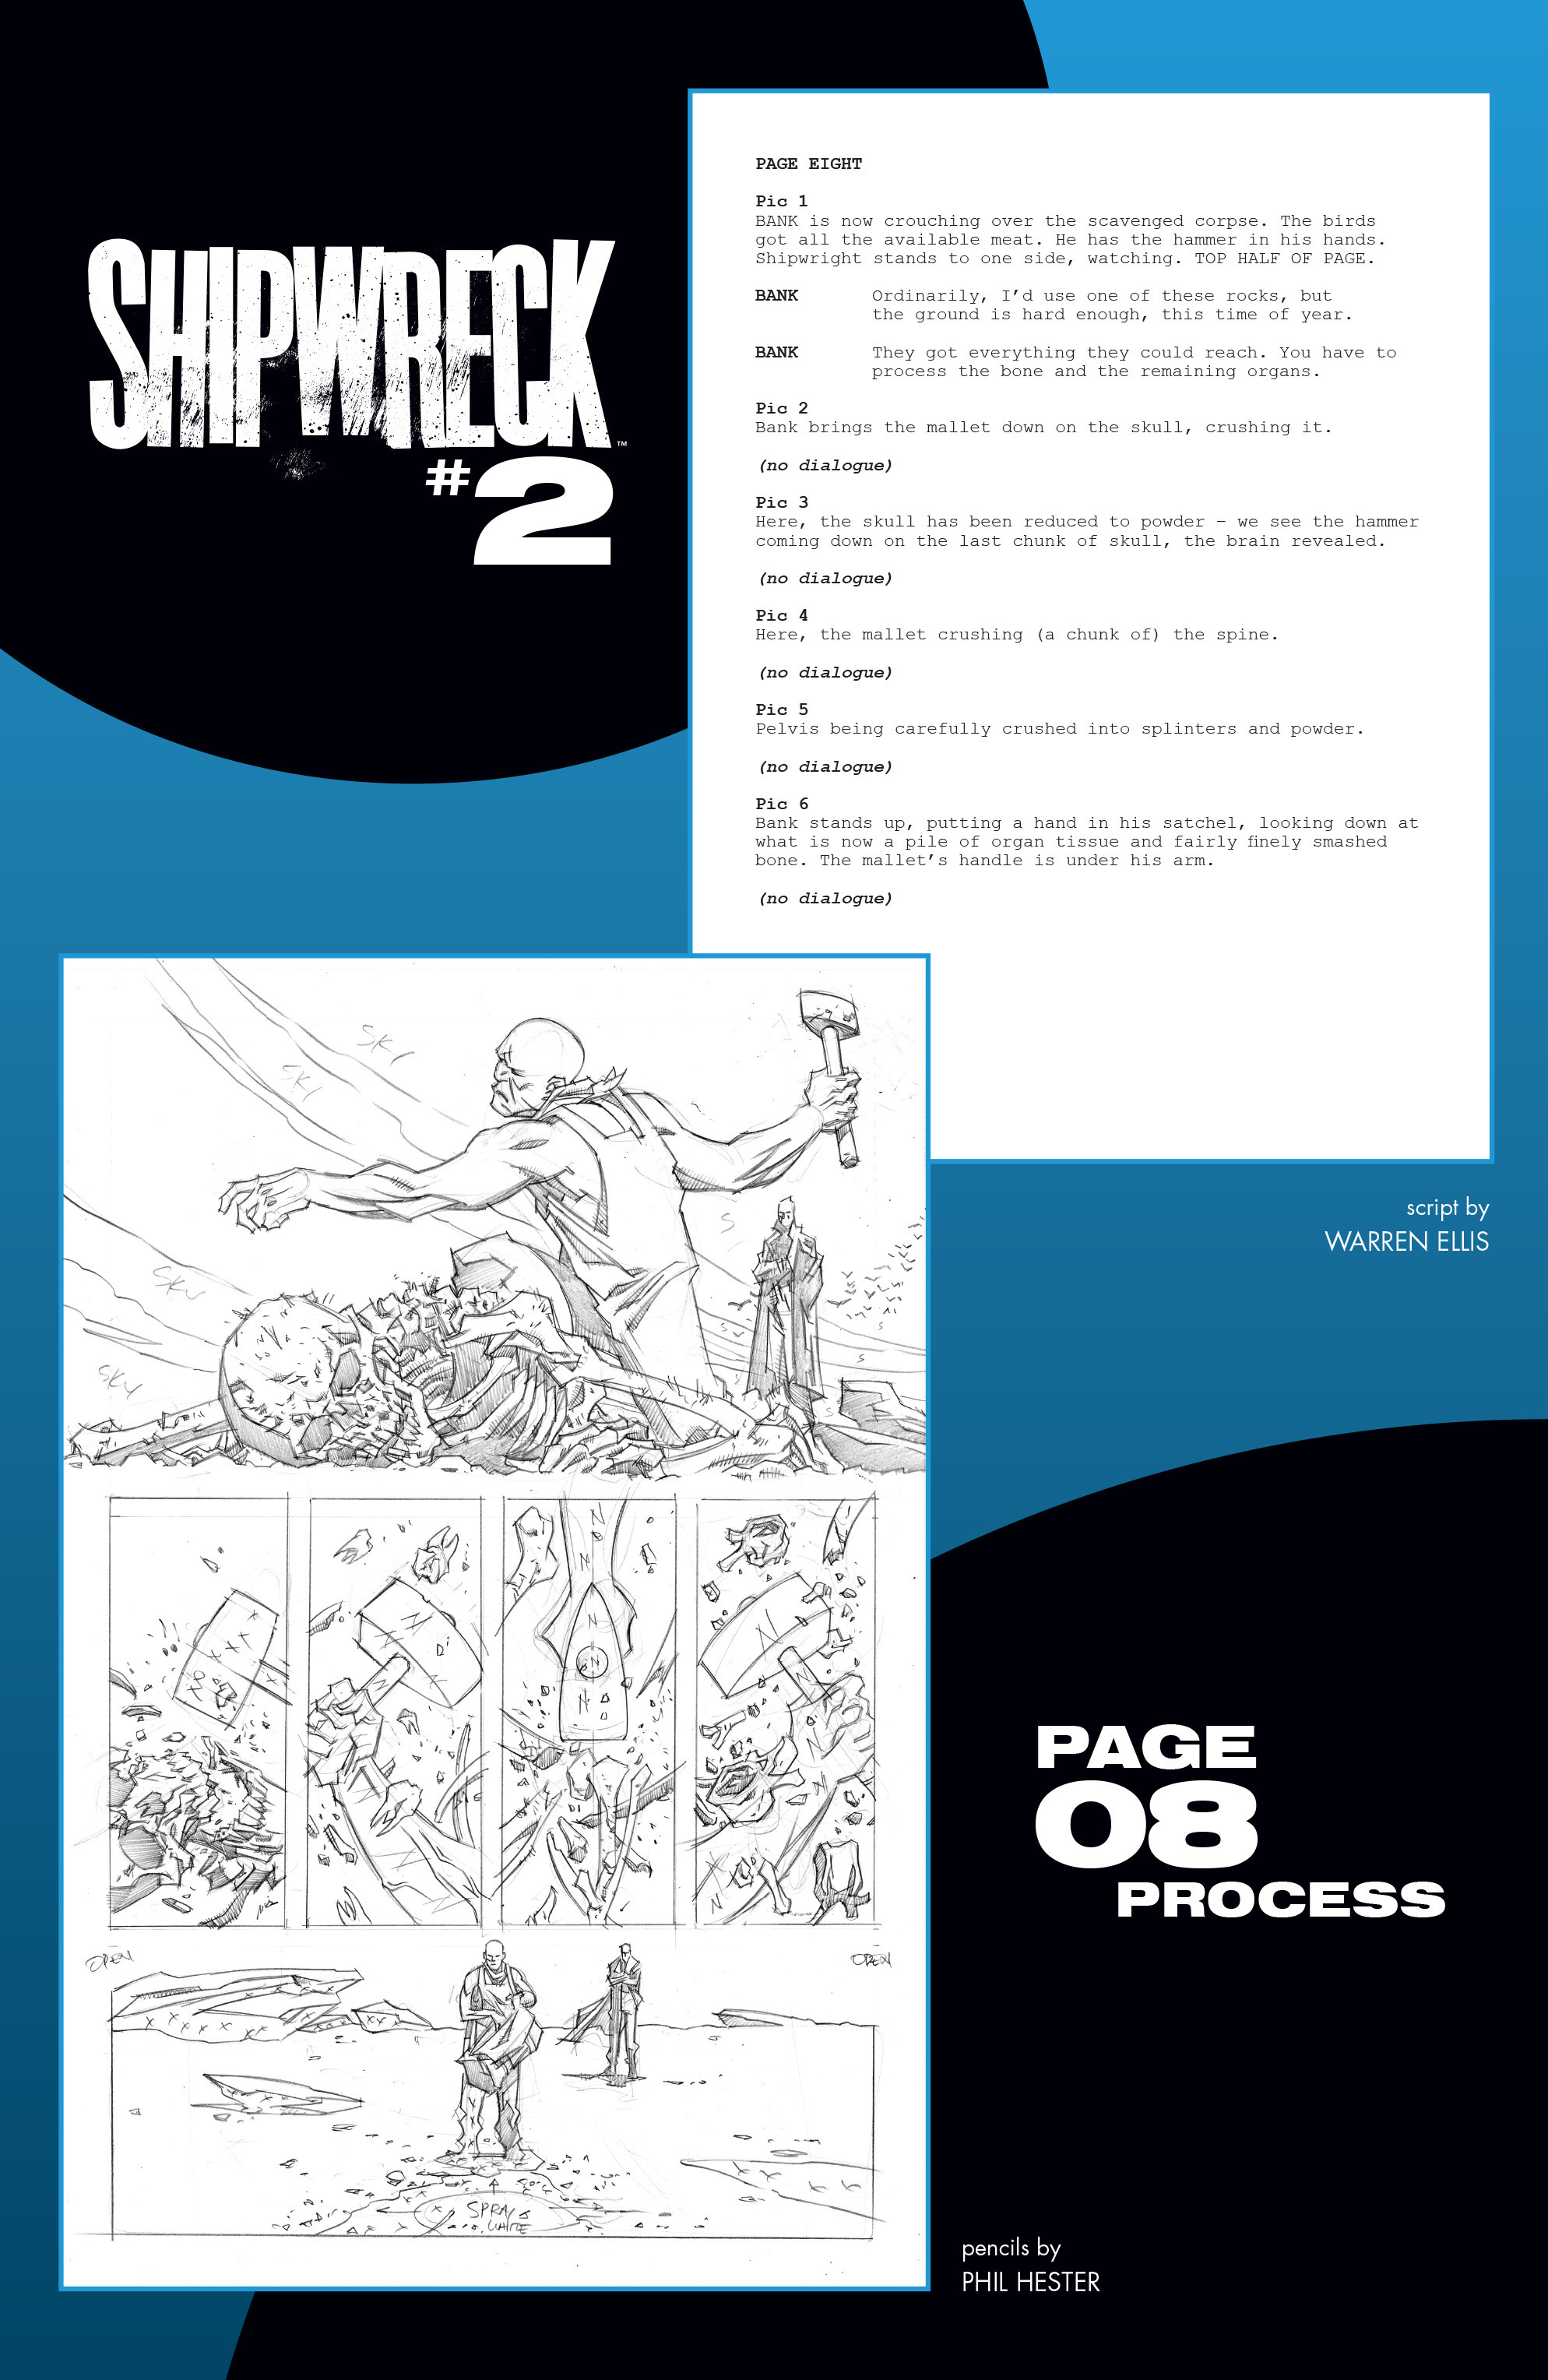 Read online Shipwreck comic -  Issue #2 - 24